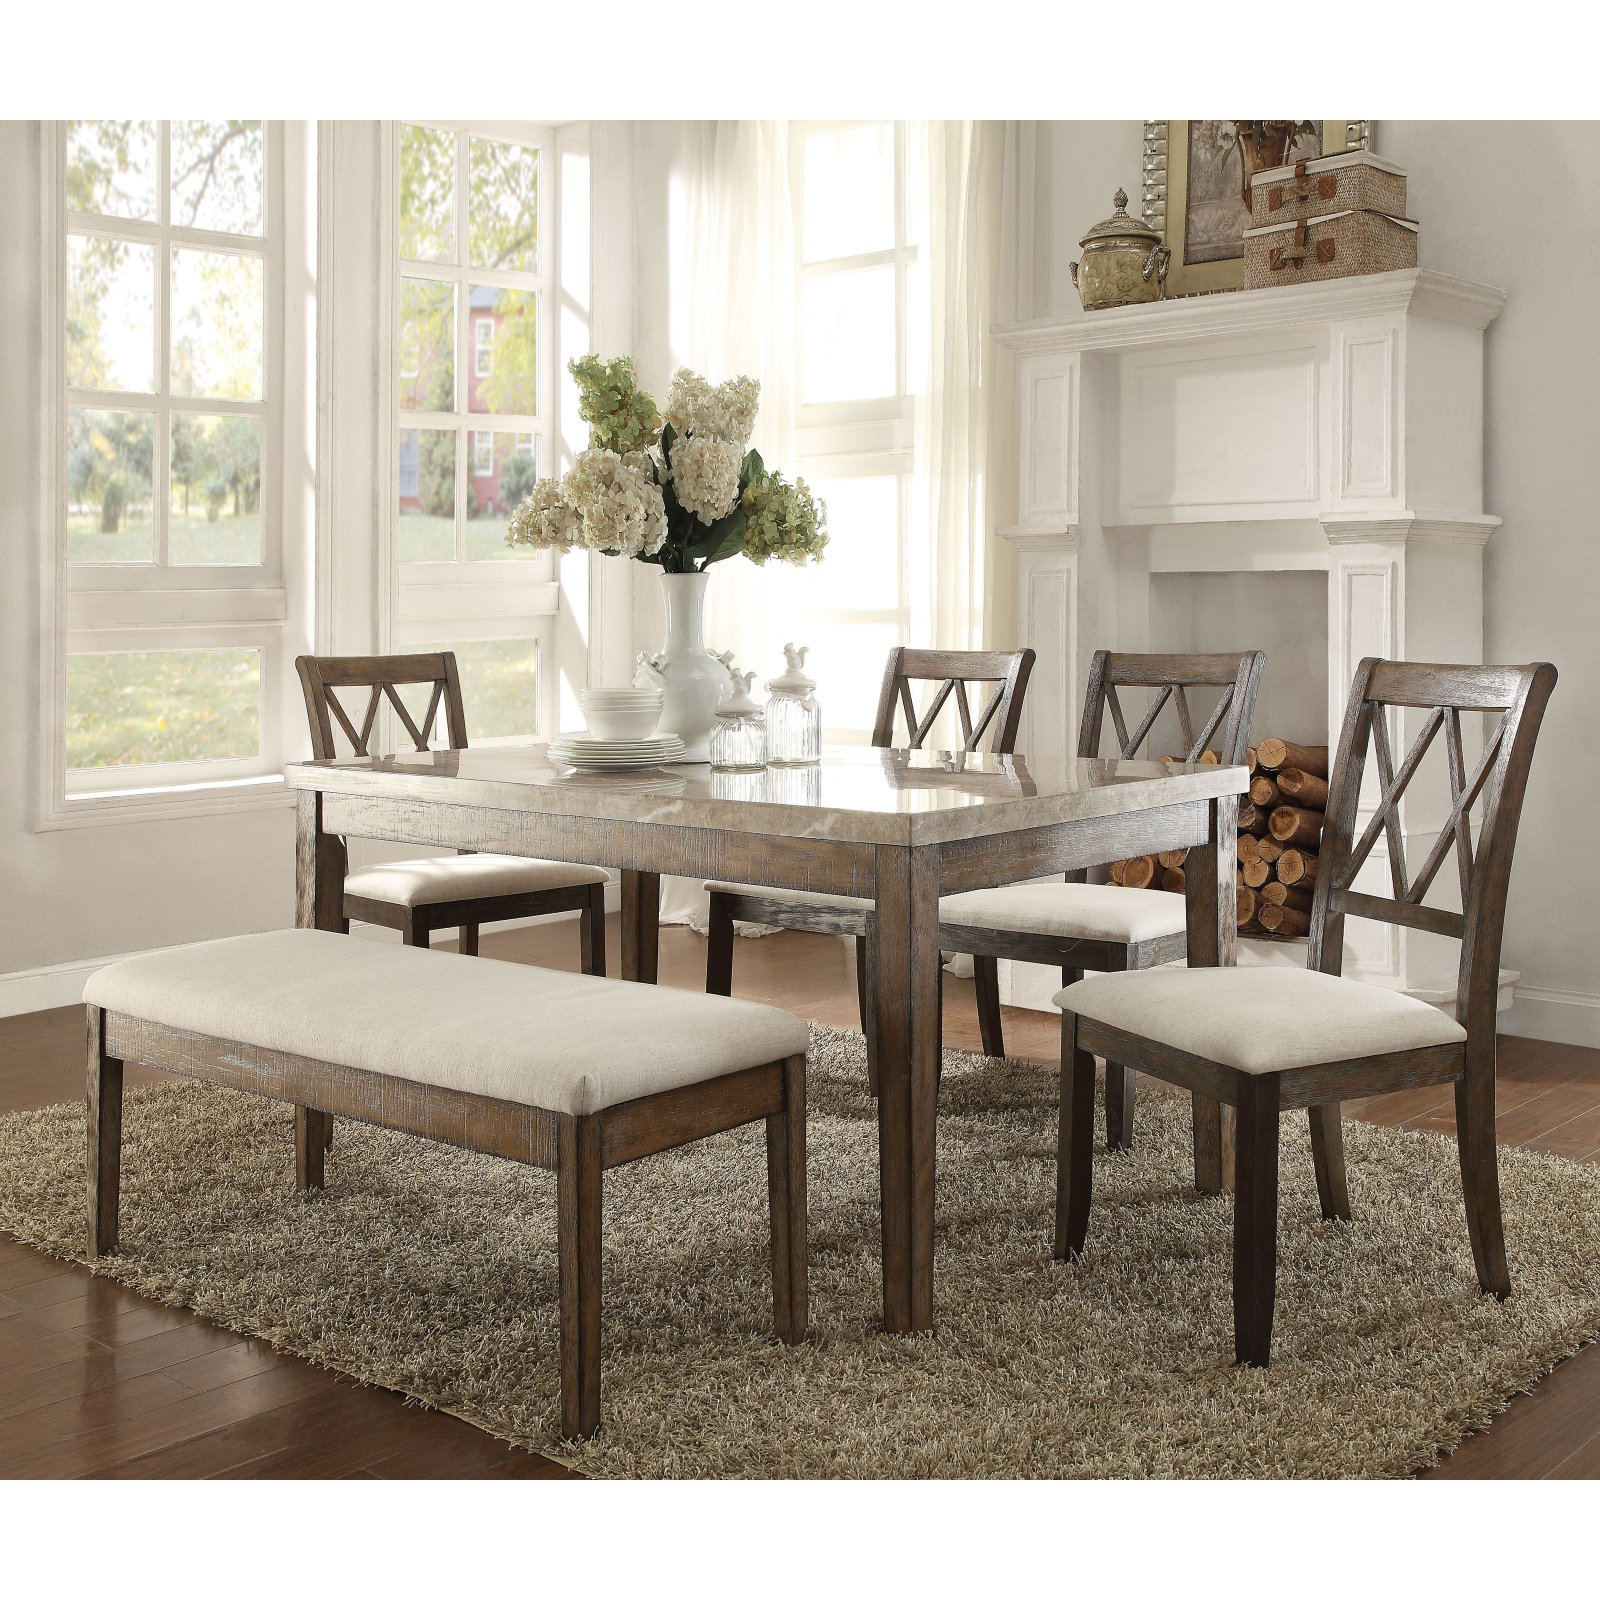 Acme Furniture Claudia Marble Dining Table